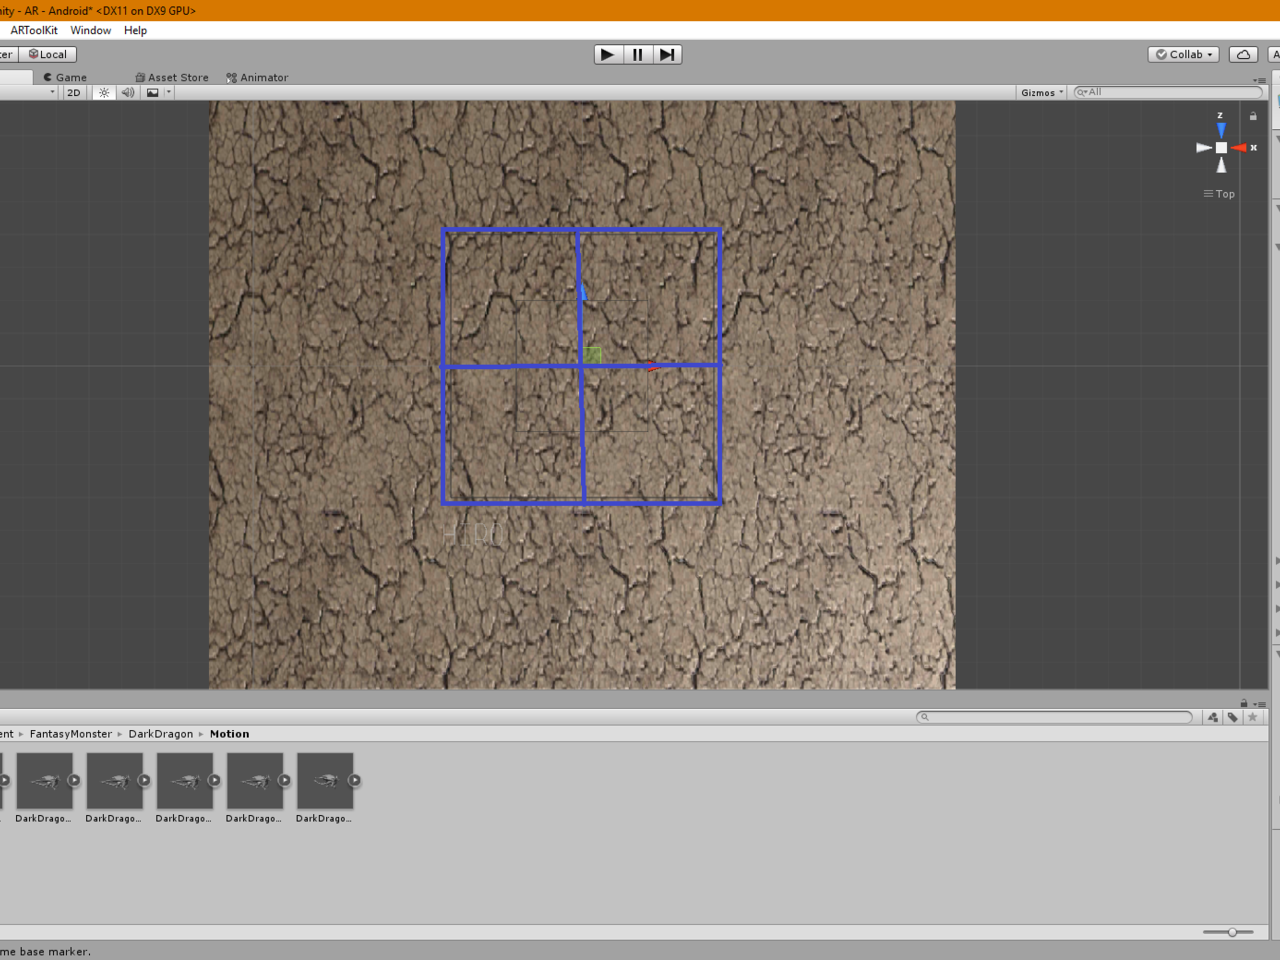 Tracking 2D marker in 3D space using unity3d and ARToolkit   Intel